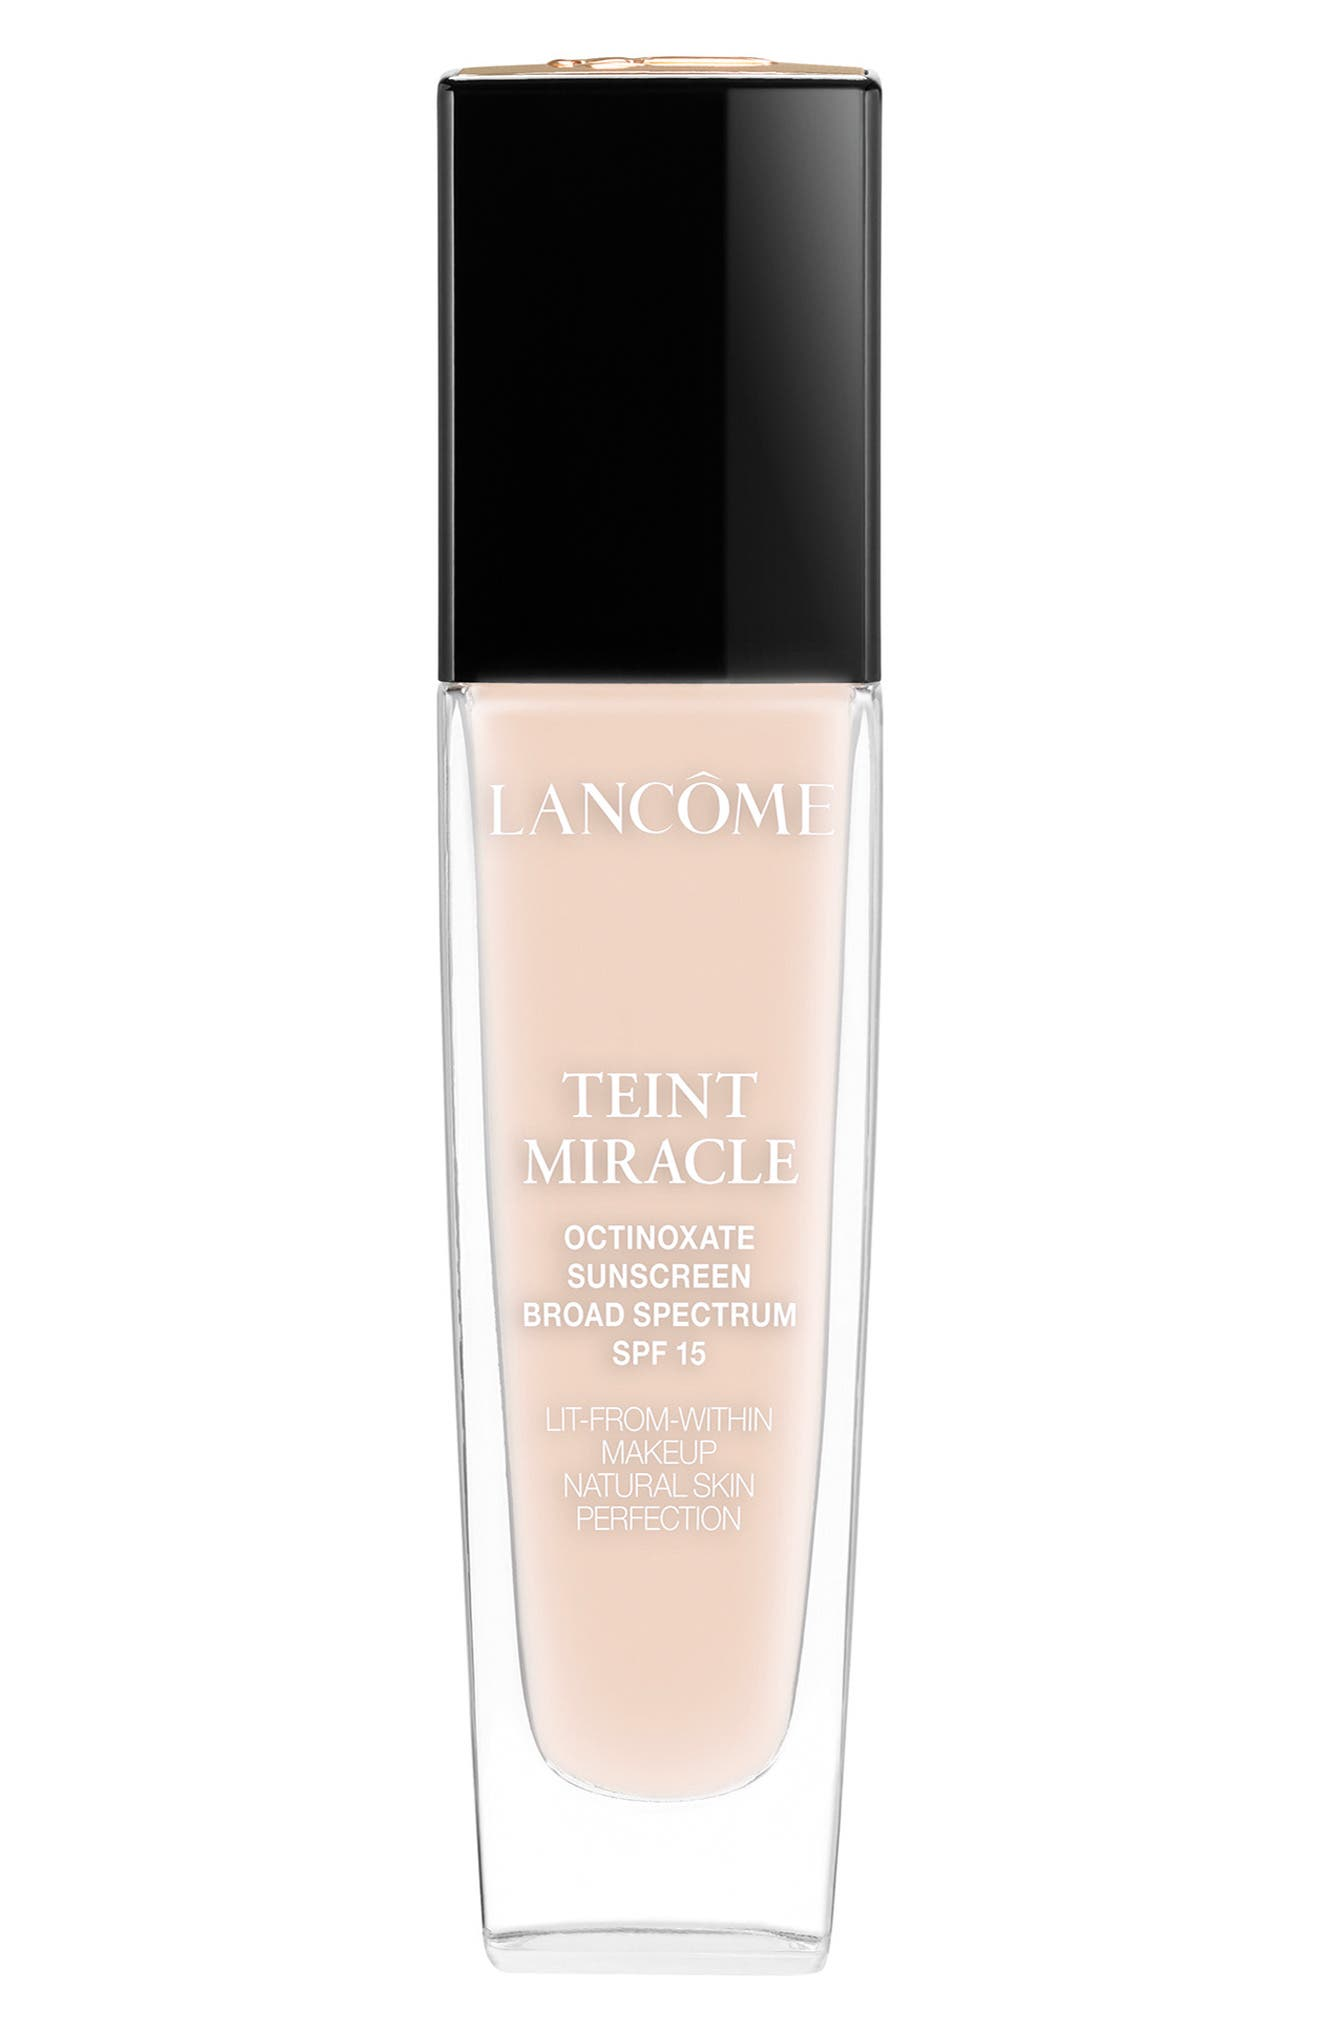 Teint Miracle Lit-from-Within Makeup Natural Skin Perfection Foundation SPF 15   Nordstrom